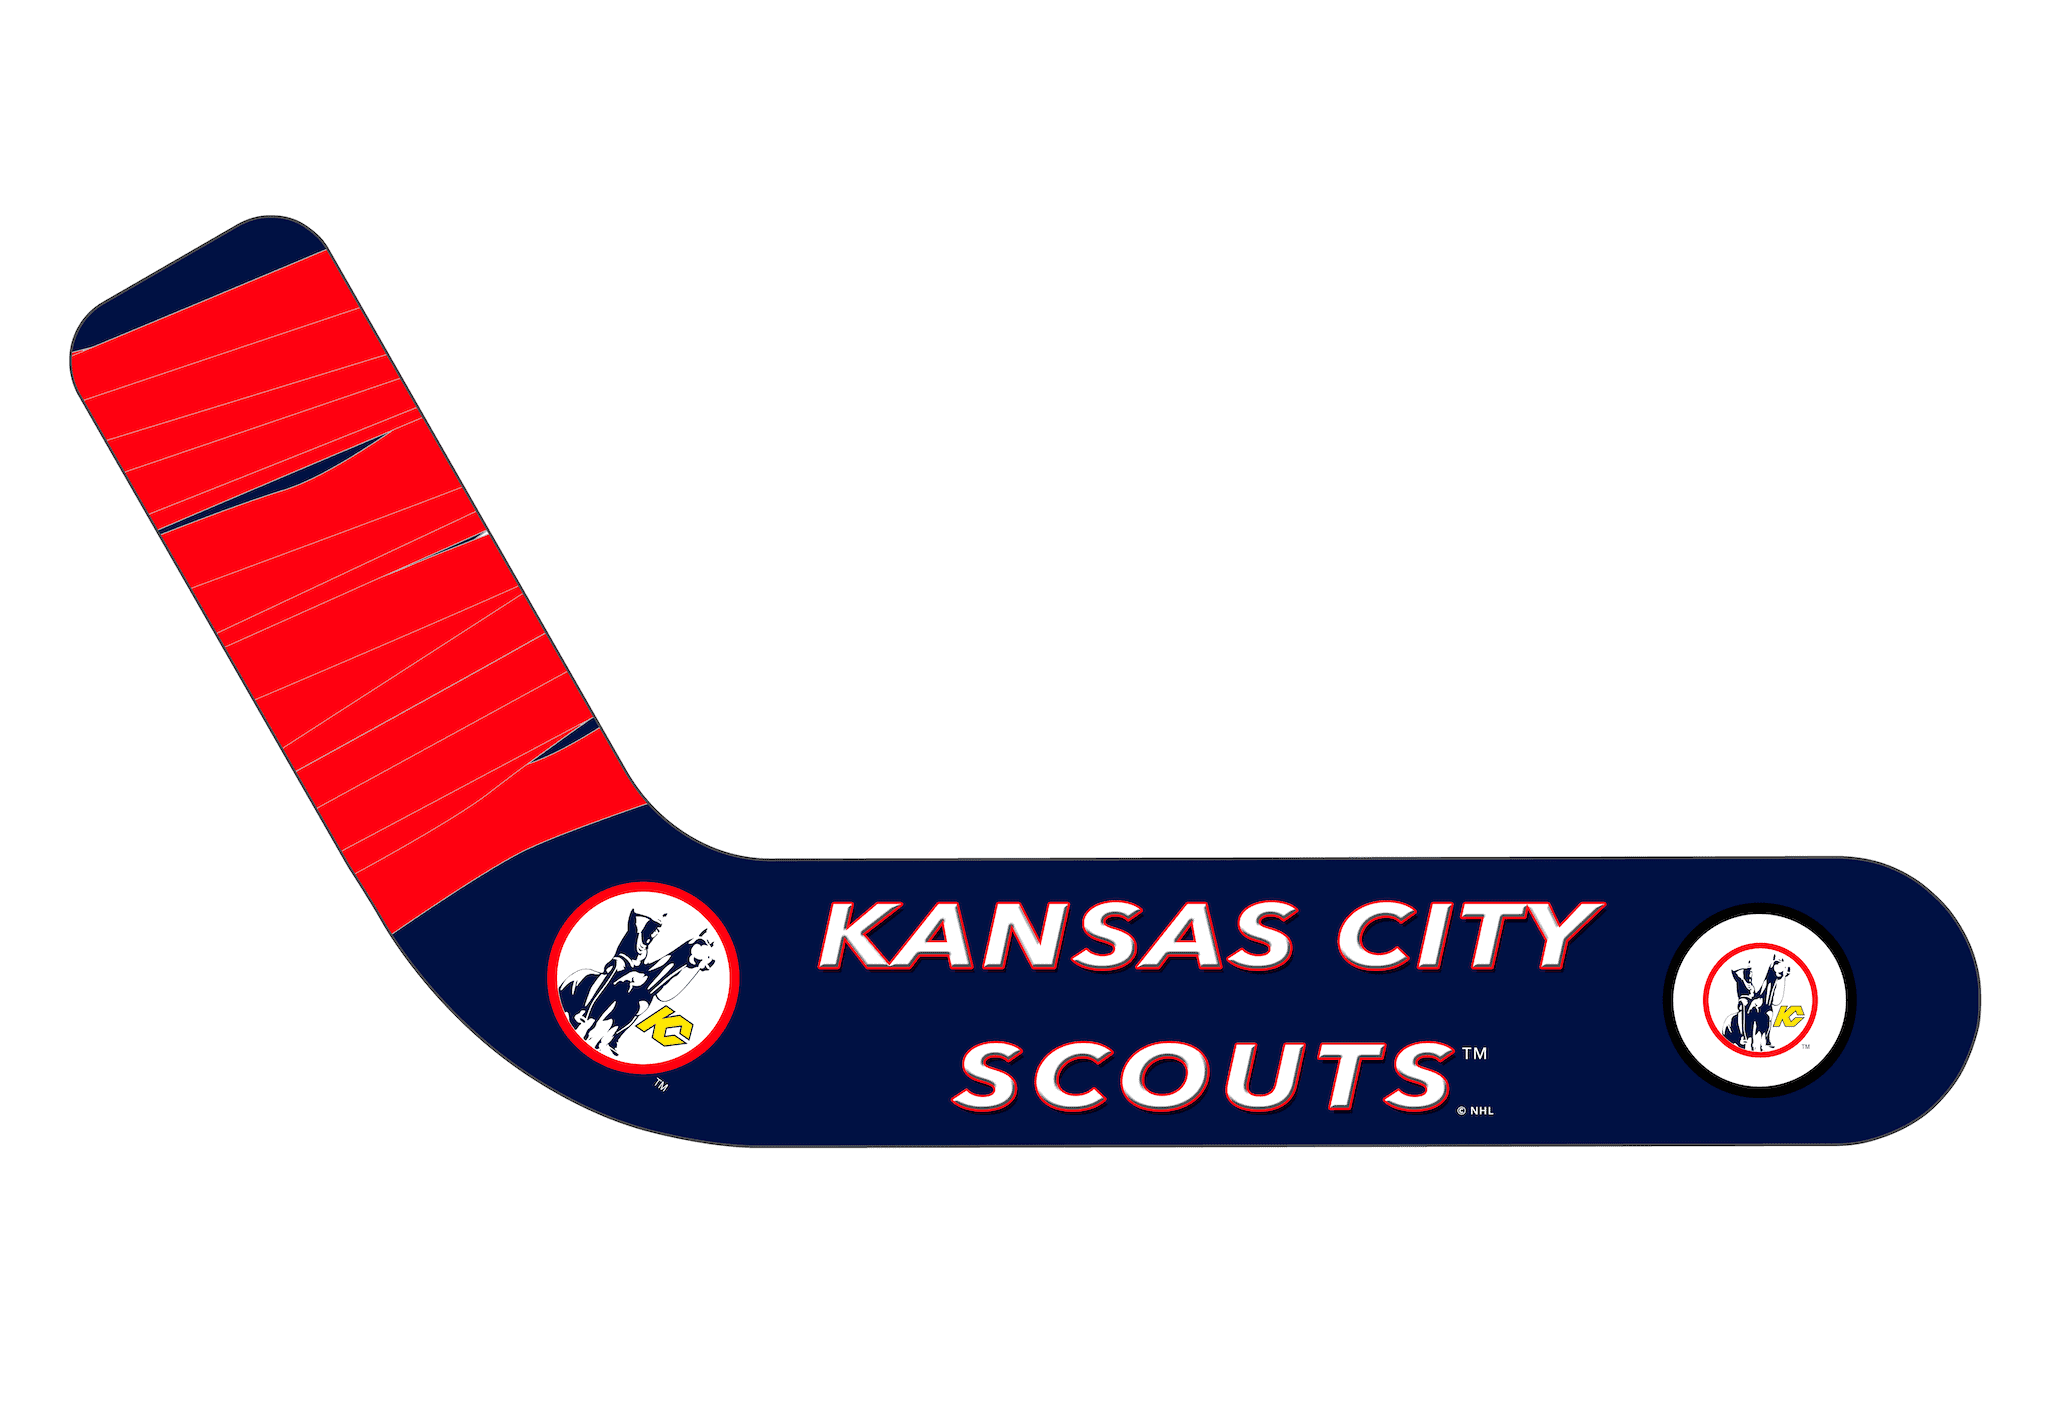 Vintage Kansas City Scouts - Ultimate Hockey Fans